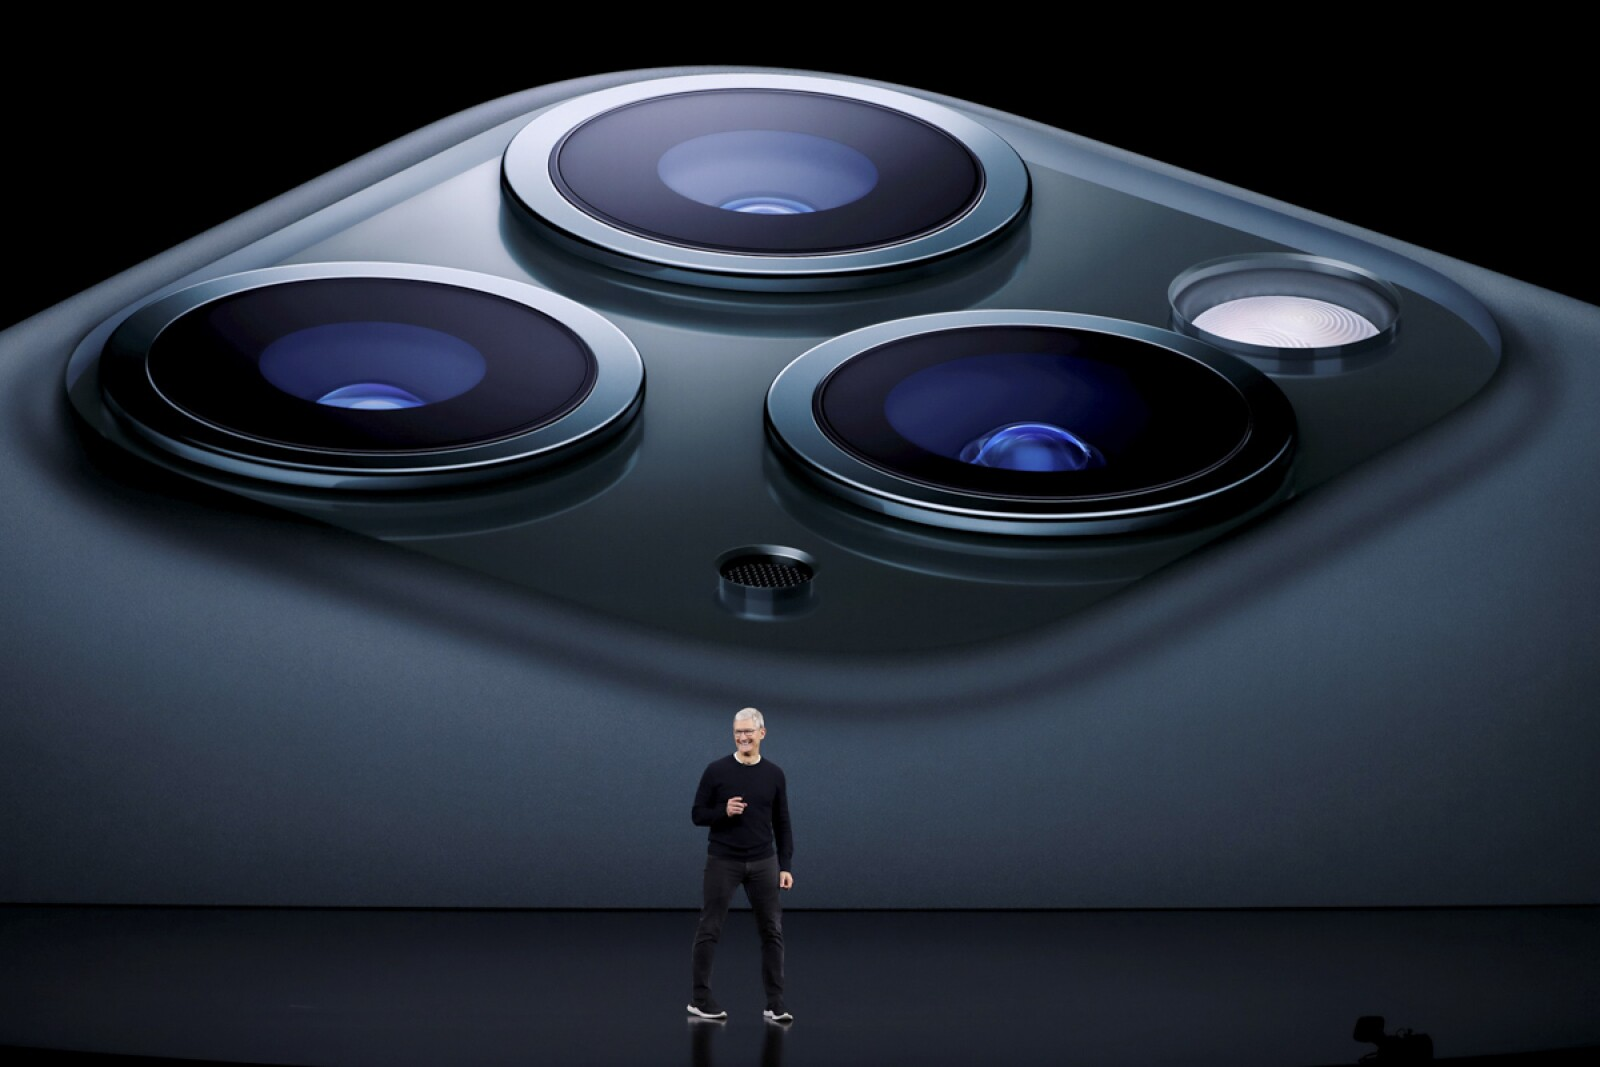 CEO Tim Cook presents the new iPhone 11 Pro at an Apple event at their headquarters in Cupertino